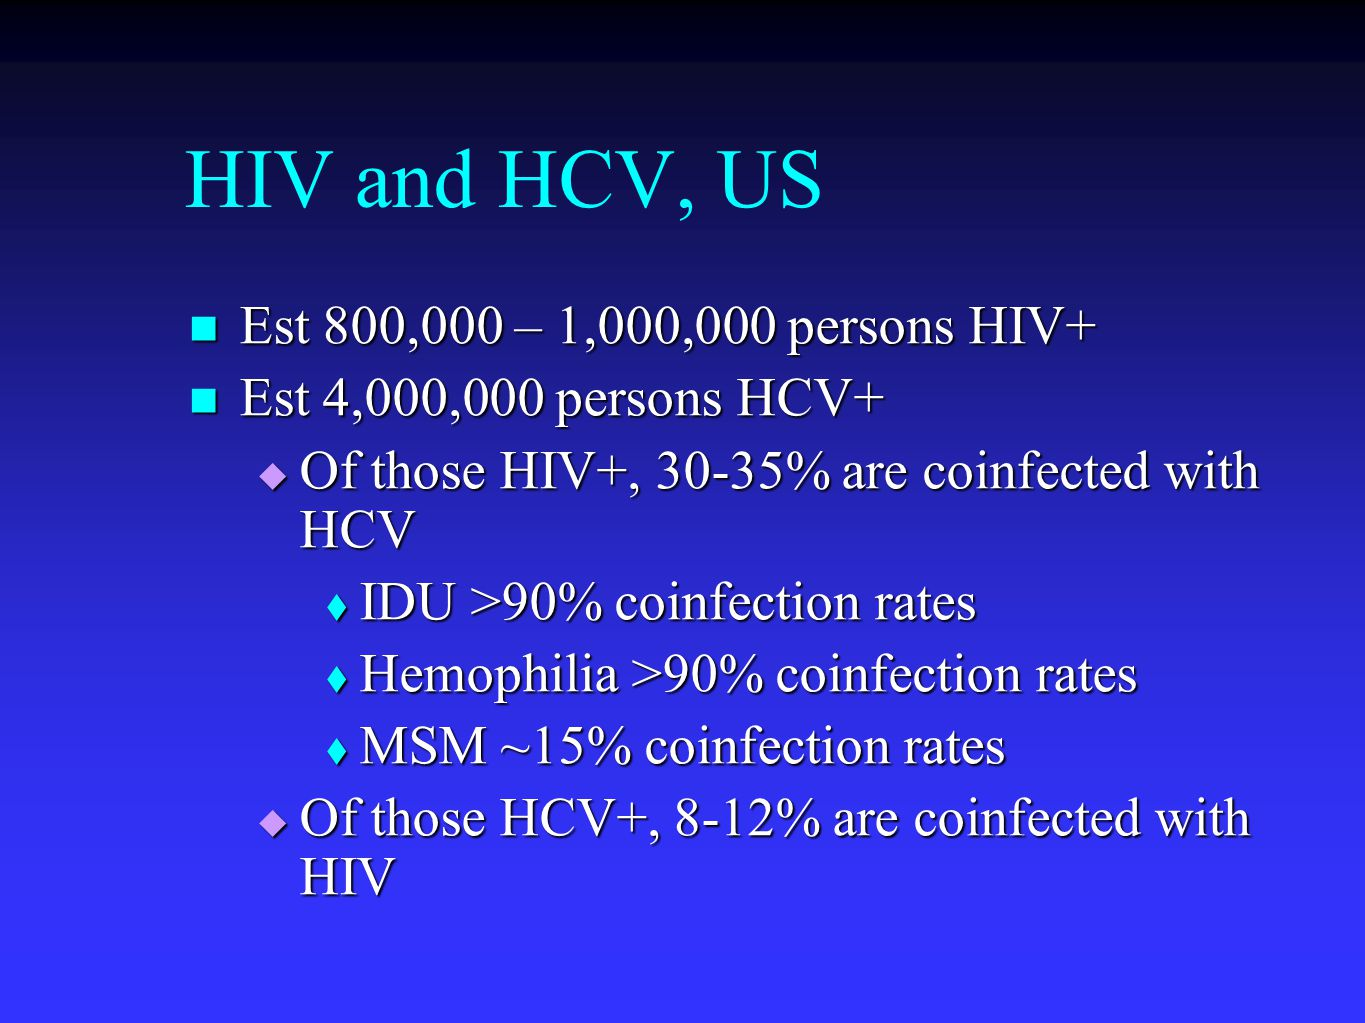 HIV and HCV, US Est 800,000 – 1,000,000 persons HIV+ Est 800,000 – 1,000,000 persons HIV+ Est 4,000,000 persons HCV+ Est 4,000,000 persons HCV+  Of those HIV+, 30-35% are coinfected with HCV  IDU >90% coinfection rates  Hemophilia >90% coinfection rates  MSM ~15% coinfection rates  Of those HCV+, 8-12% are coinfected with HIV